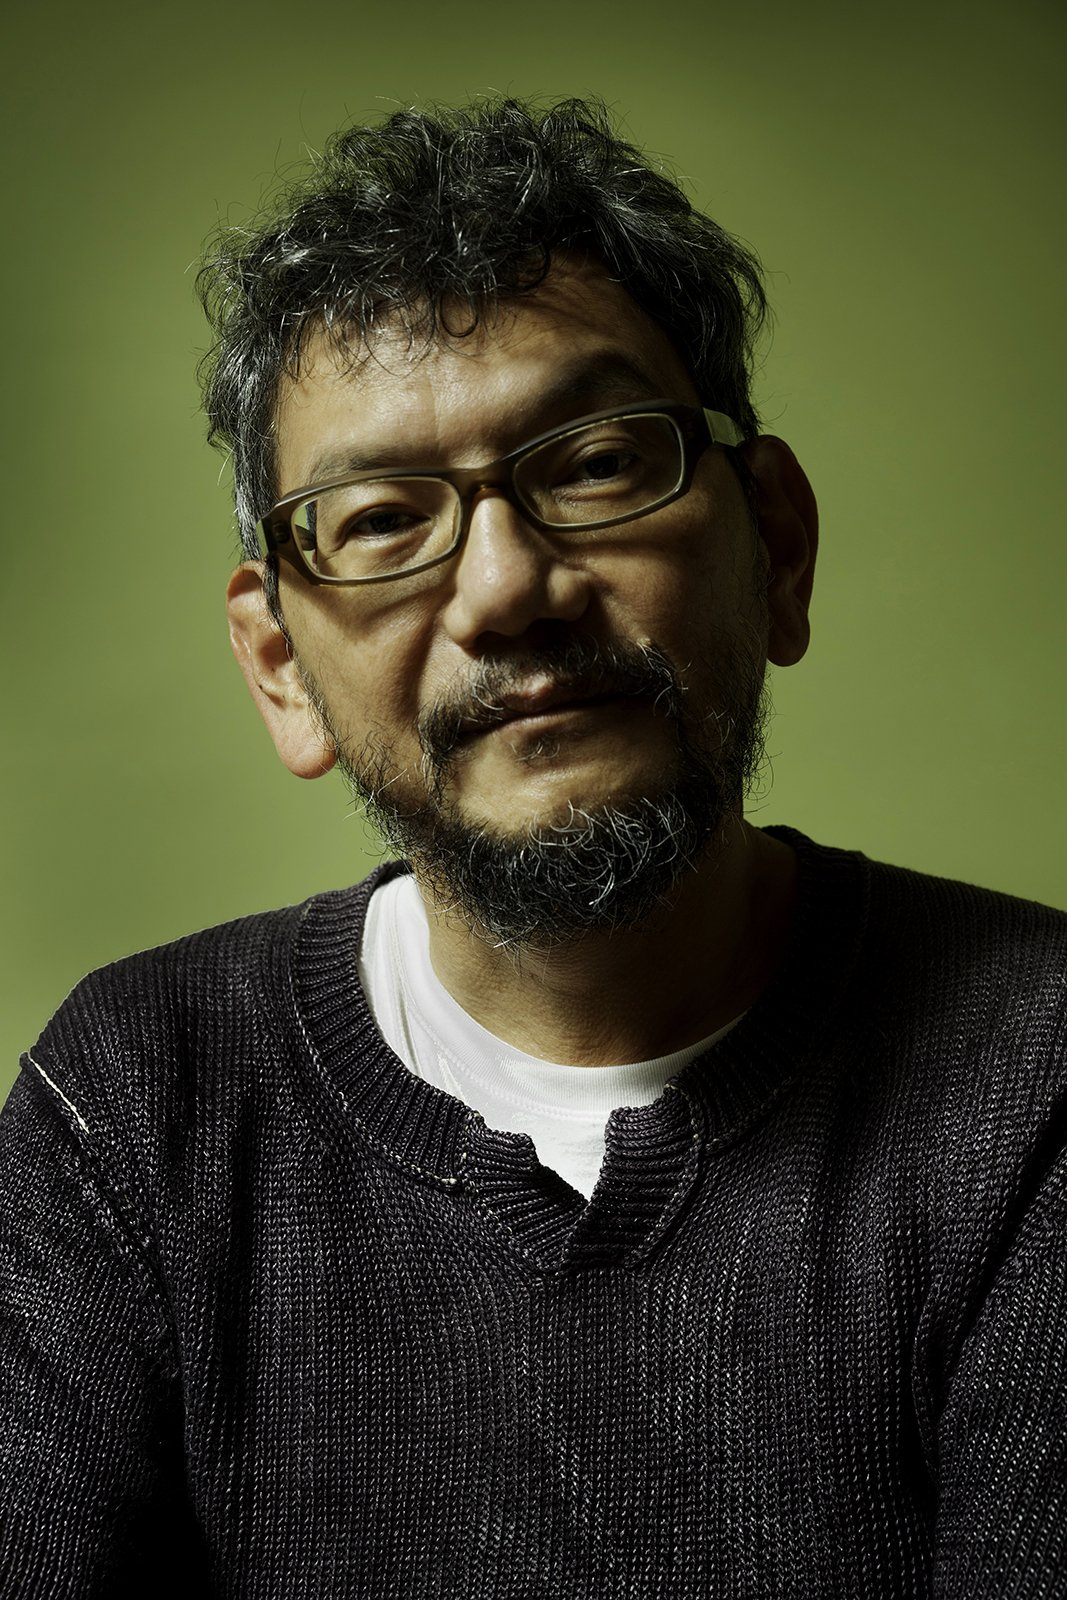 Hideaki Anno turned 59 today! Happy Birthday!